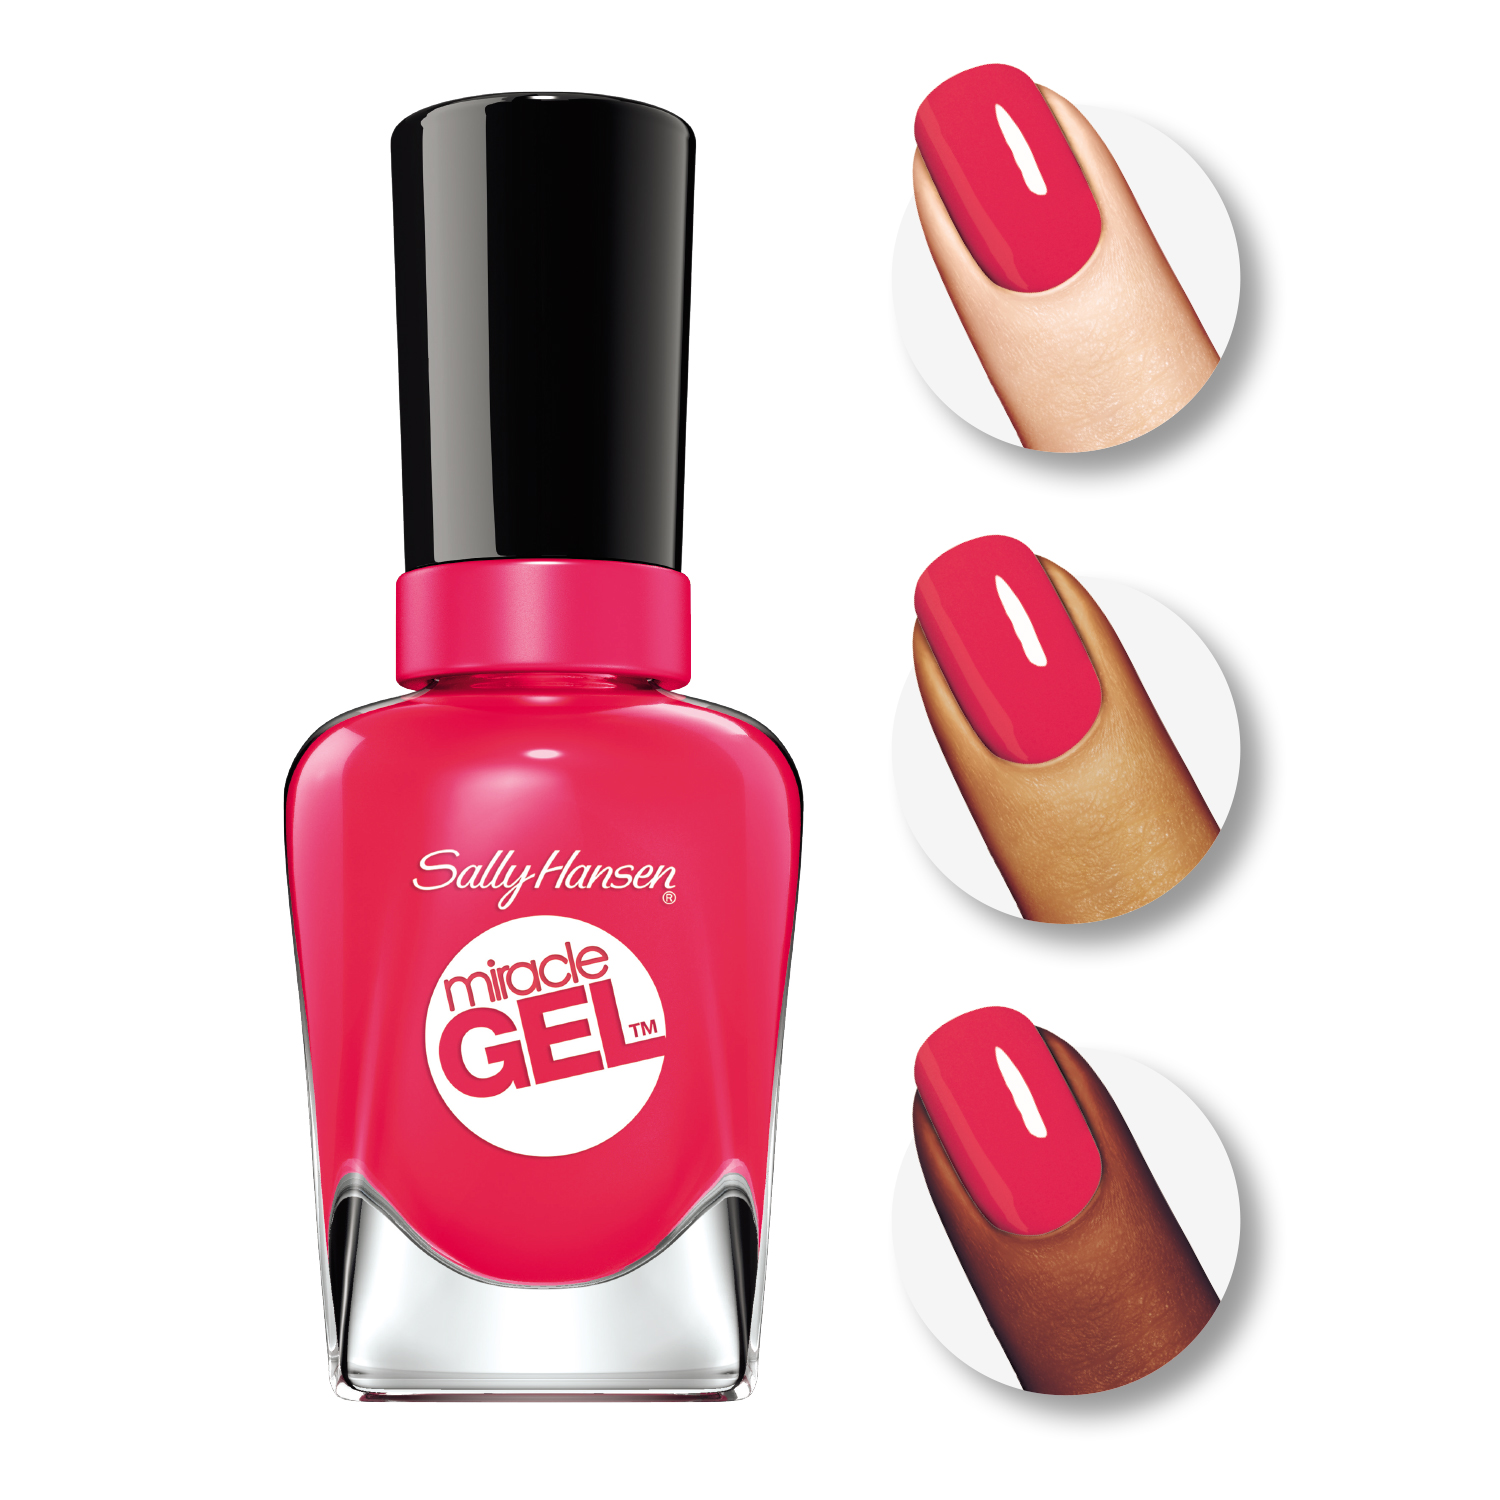 Sally Hansen Miracle Gel Nail Polish, Wine Stock